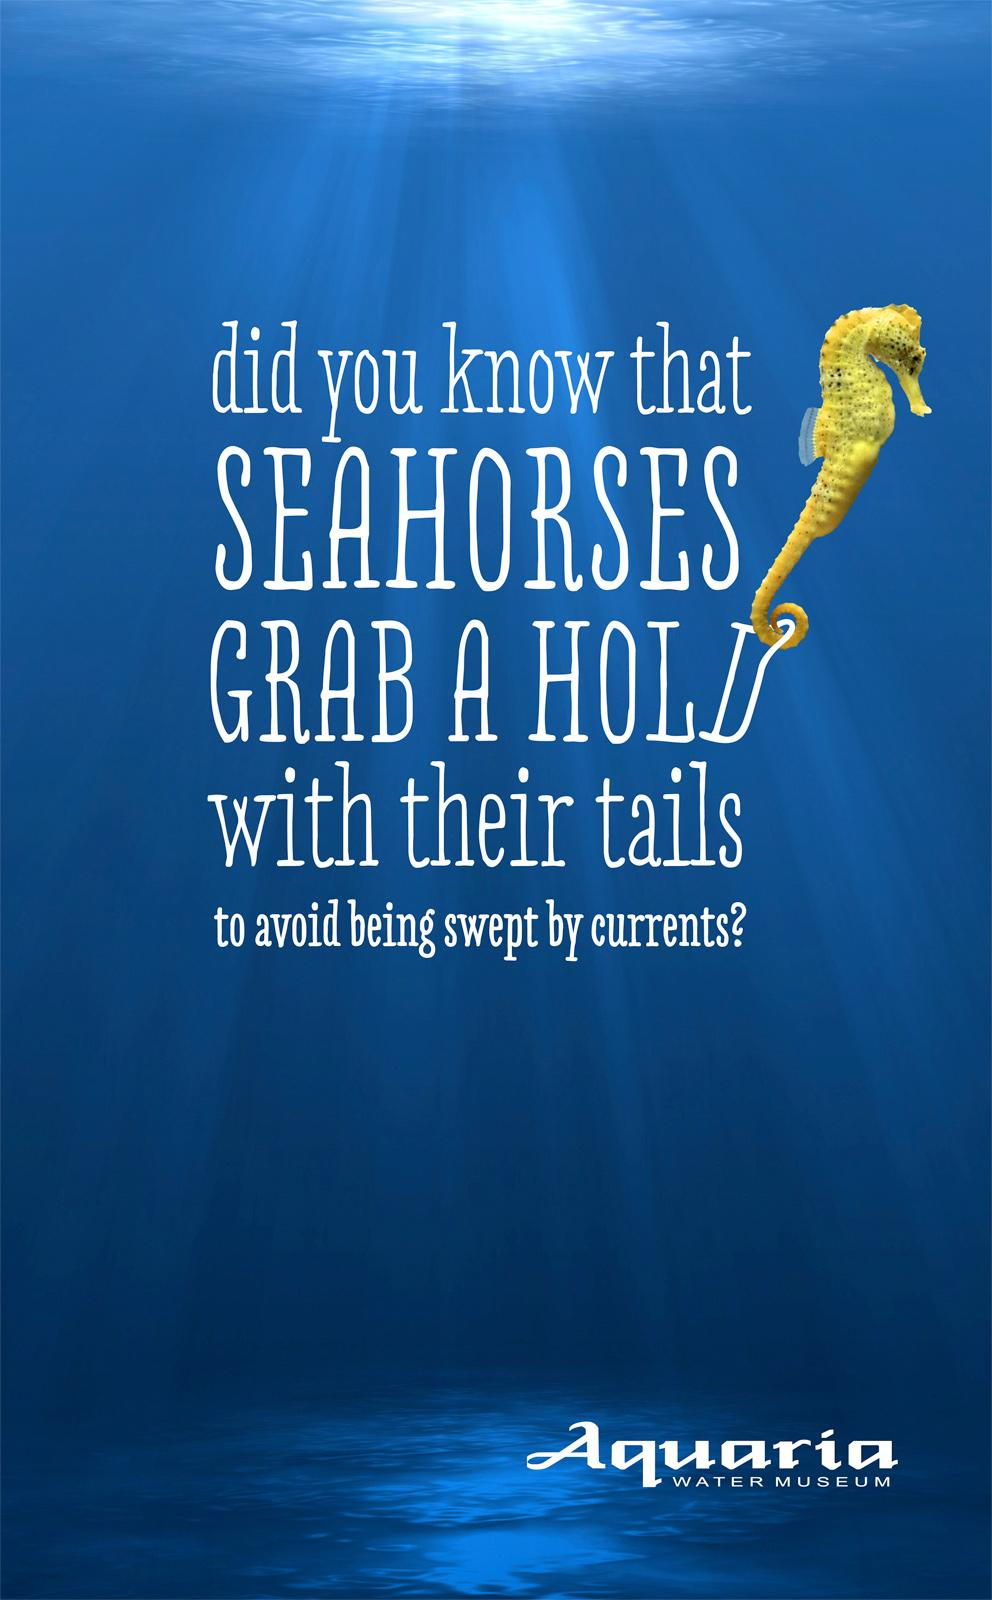 Aquaria Watermuseum Outdoor Ad -  Wet facts, Seahorse